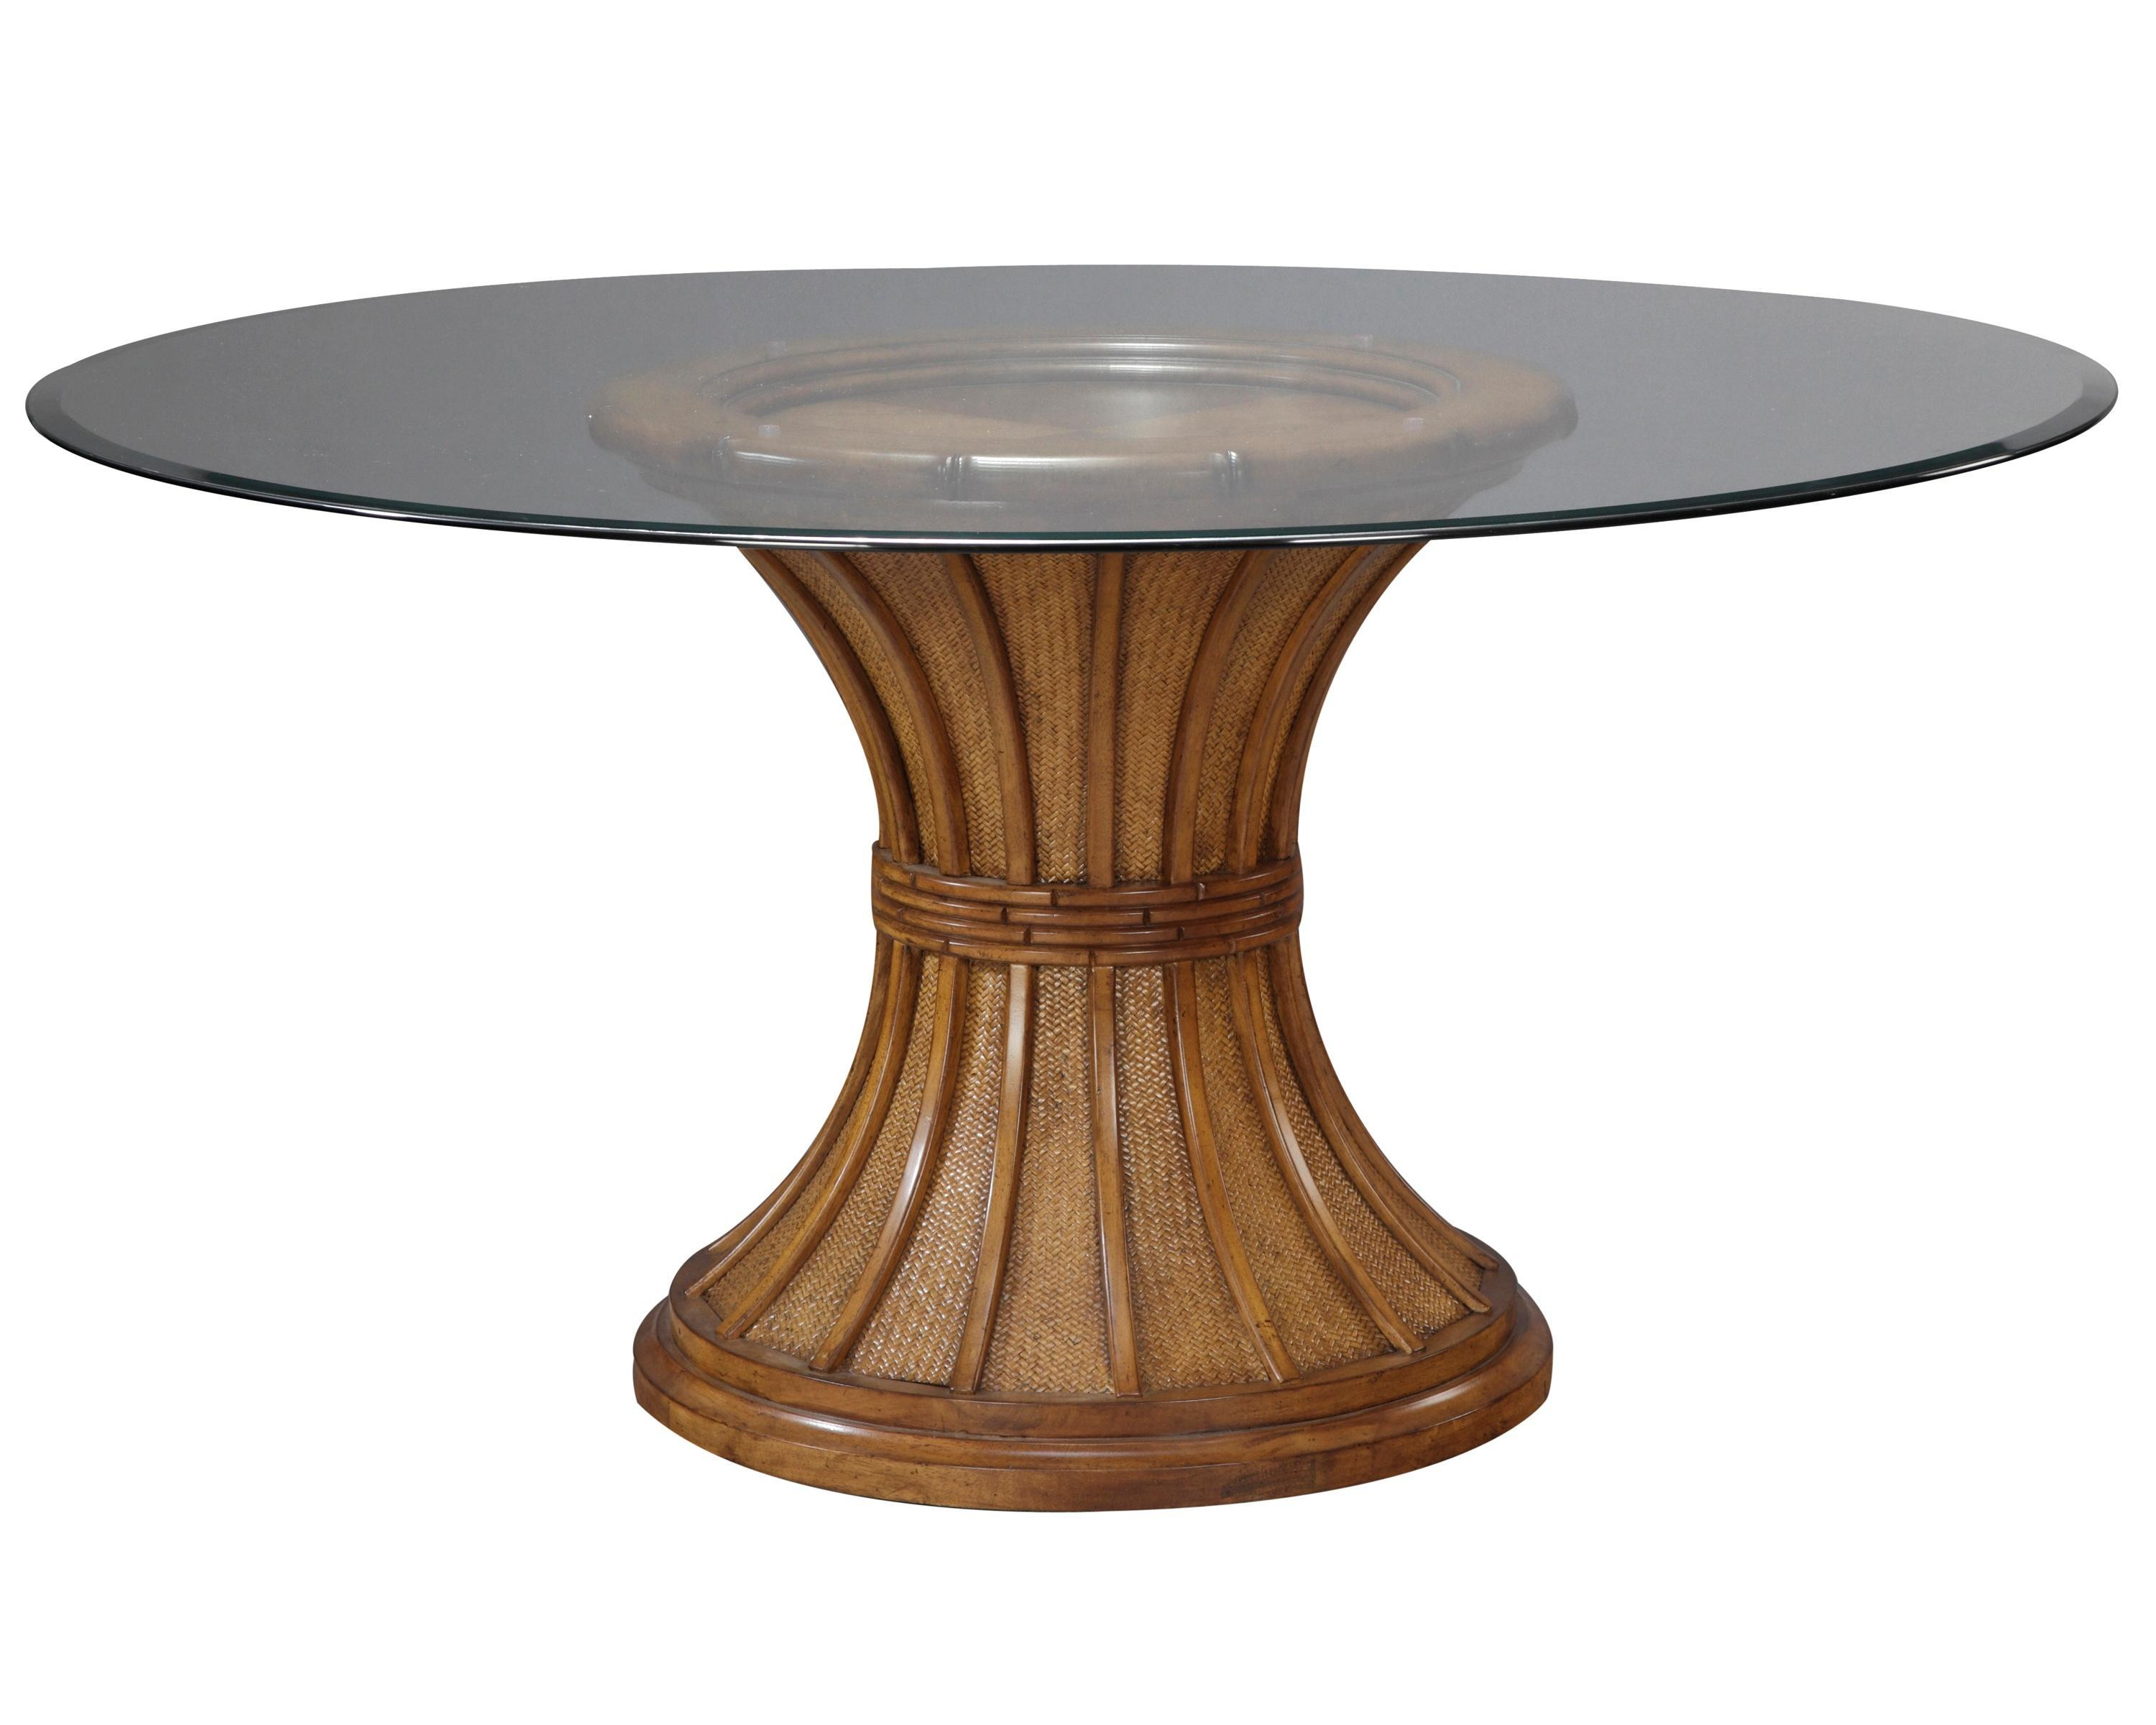 Dining room table bases for glass tops - Unique Pedestal Table Base For Glass Top With Round Shape